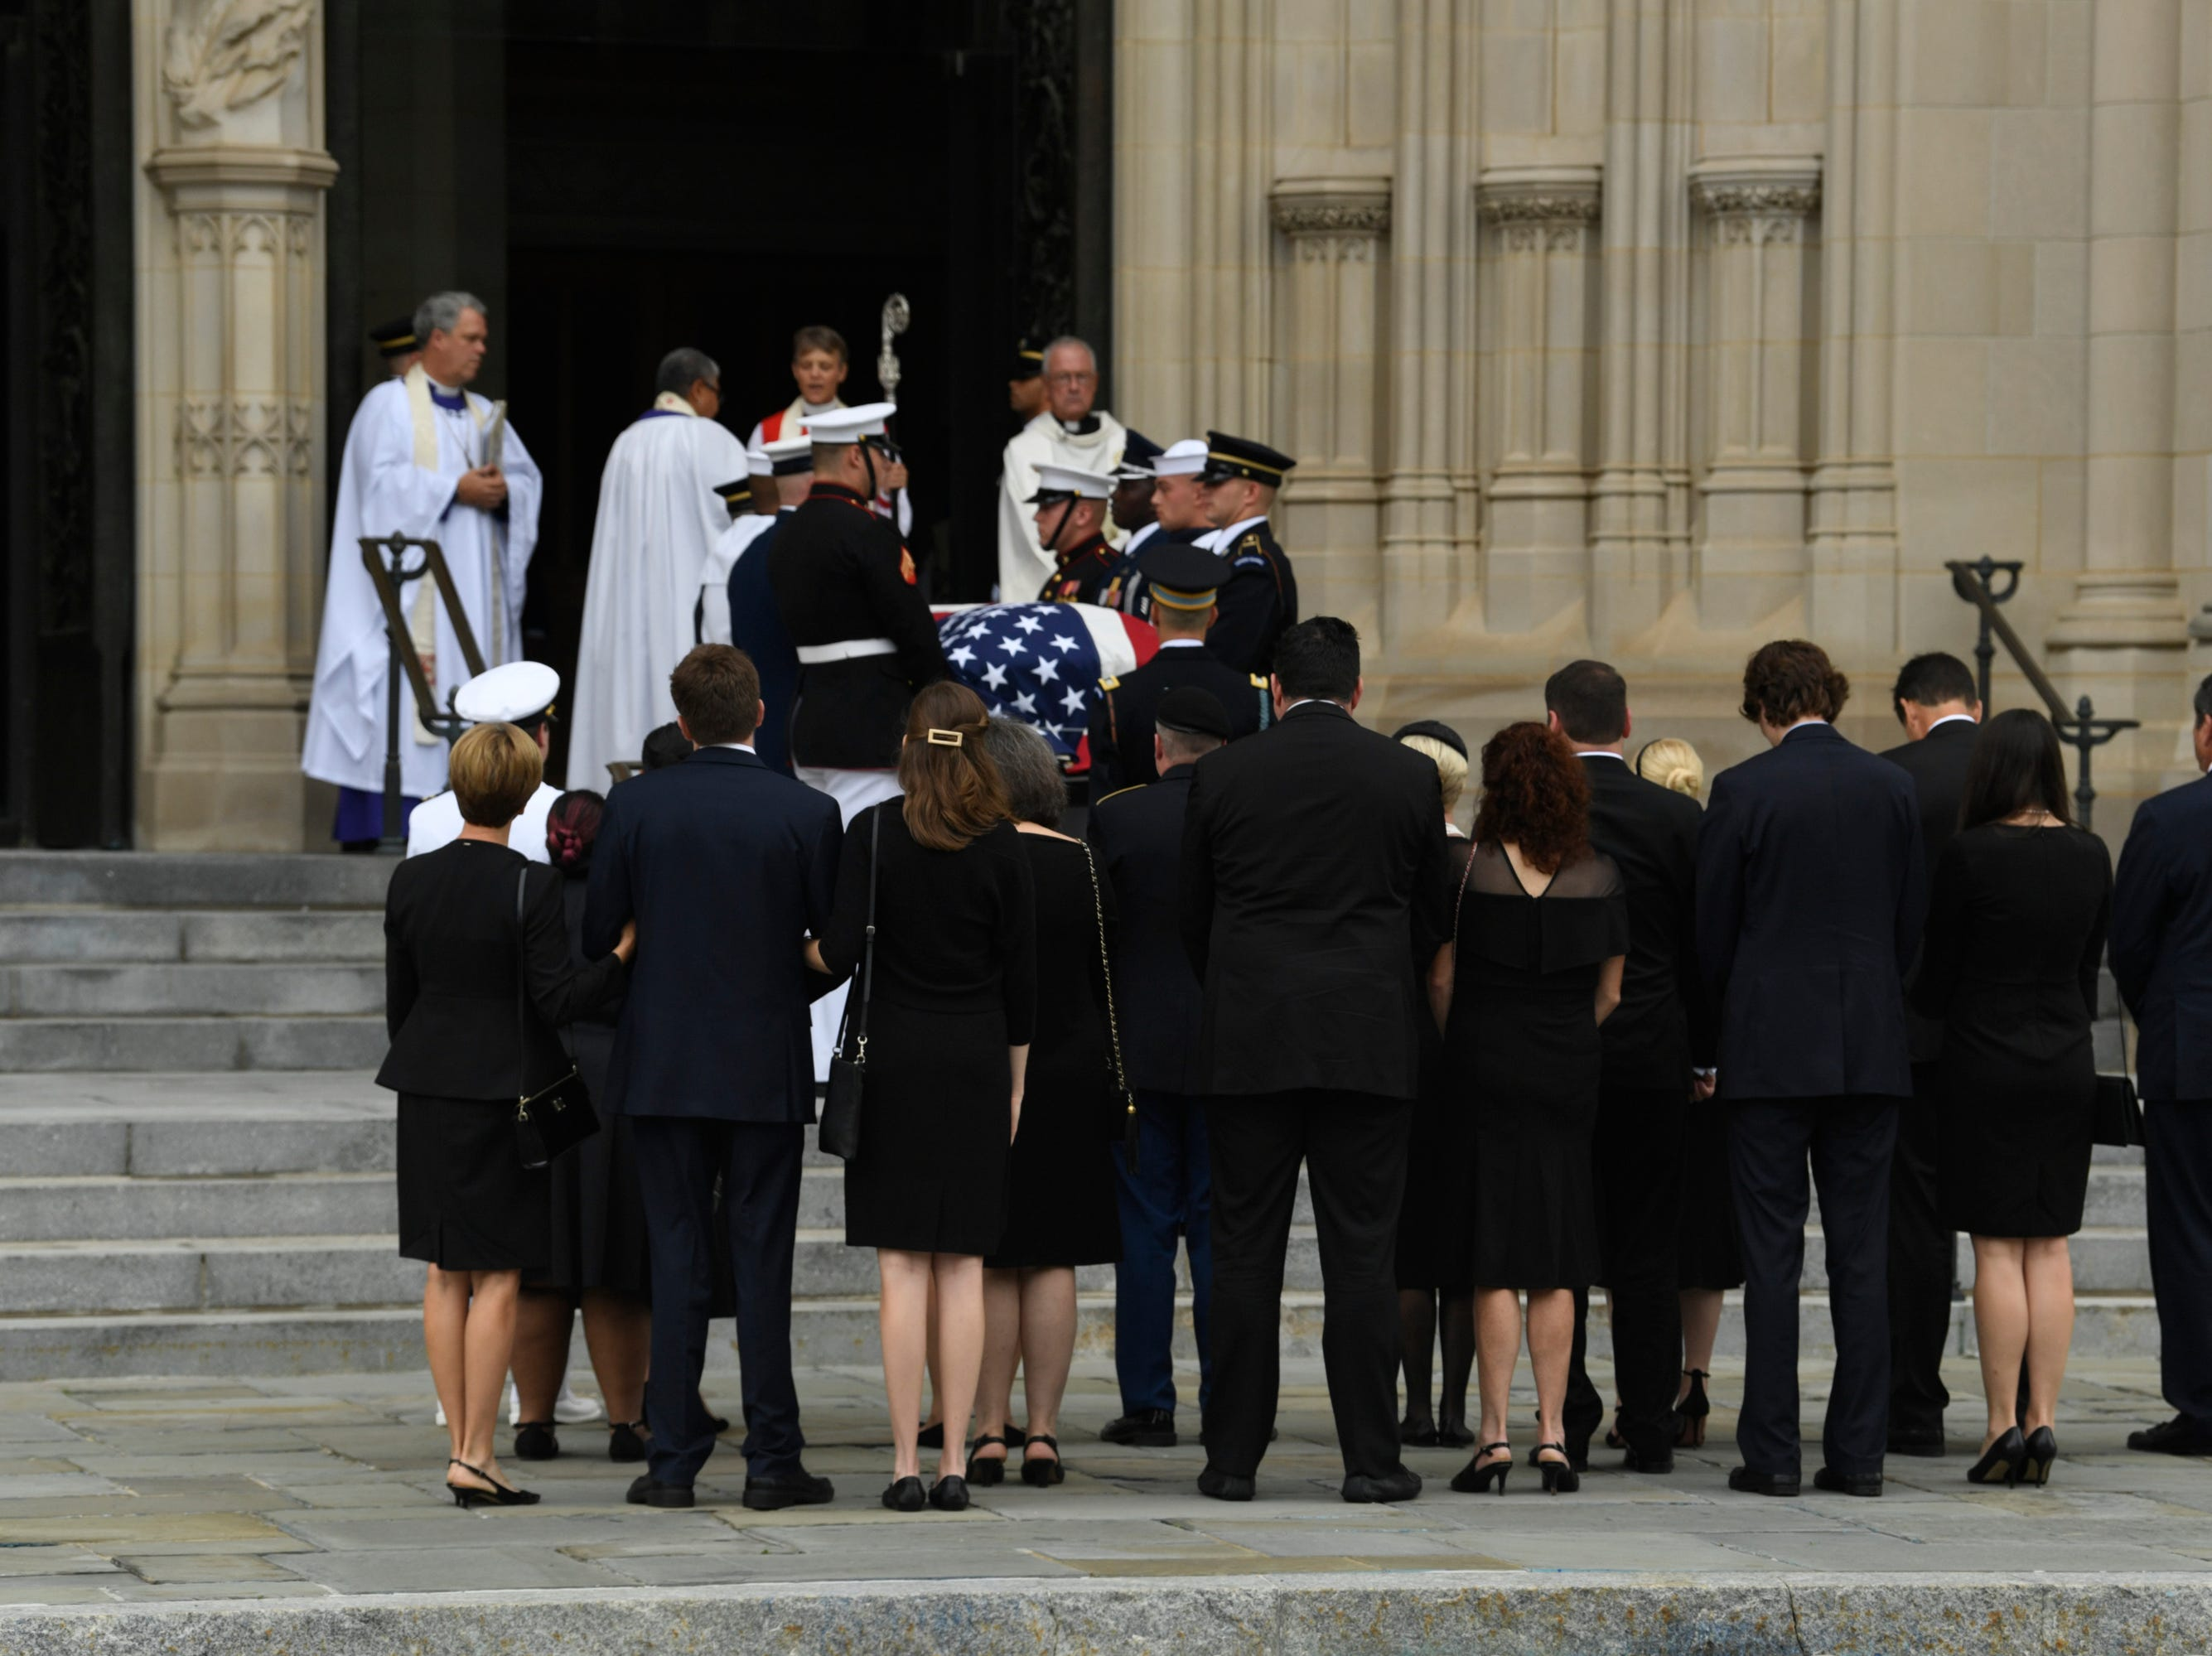 9/1/18 9:46:00 AM -- Washington, DC, U.S.A  -- Members of the McCain family watch as John McCainÕs casket is carried into the National Cathedral in Washington for a memorial service on Sept. 1, 2018. Sen. McCain died on Aug. 25. --    Photo by Jasper Colt, USA TODAY Staff